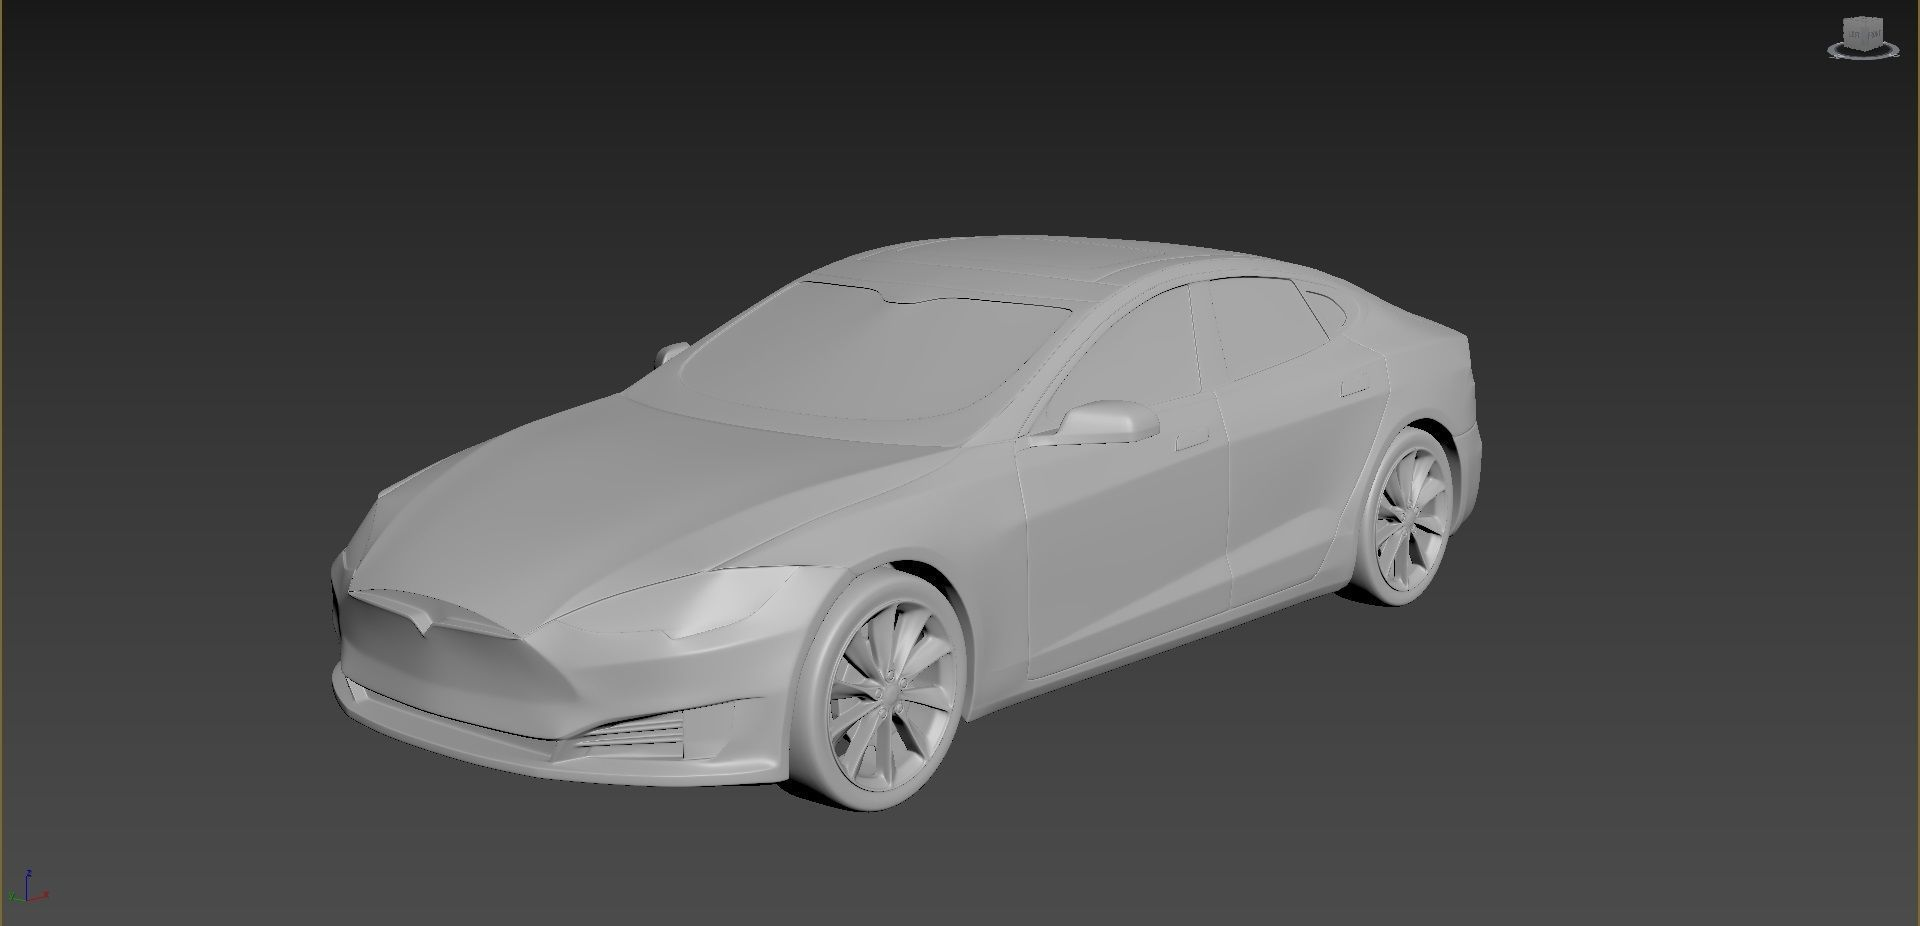 Tesla Model S on a small scale